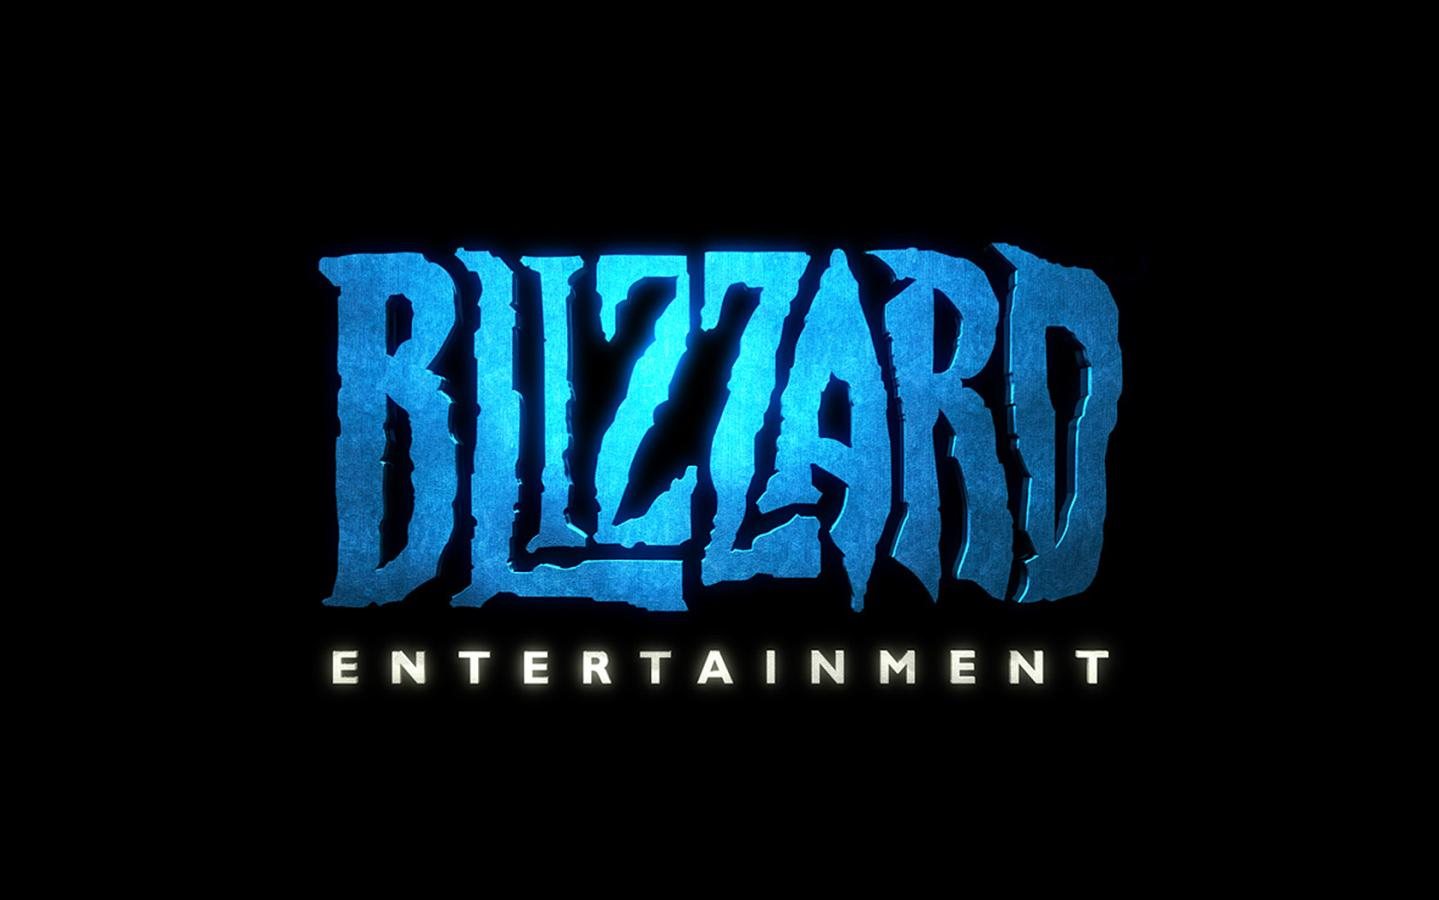 Blizzard Working on New Mobile Game, According to Job Posting